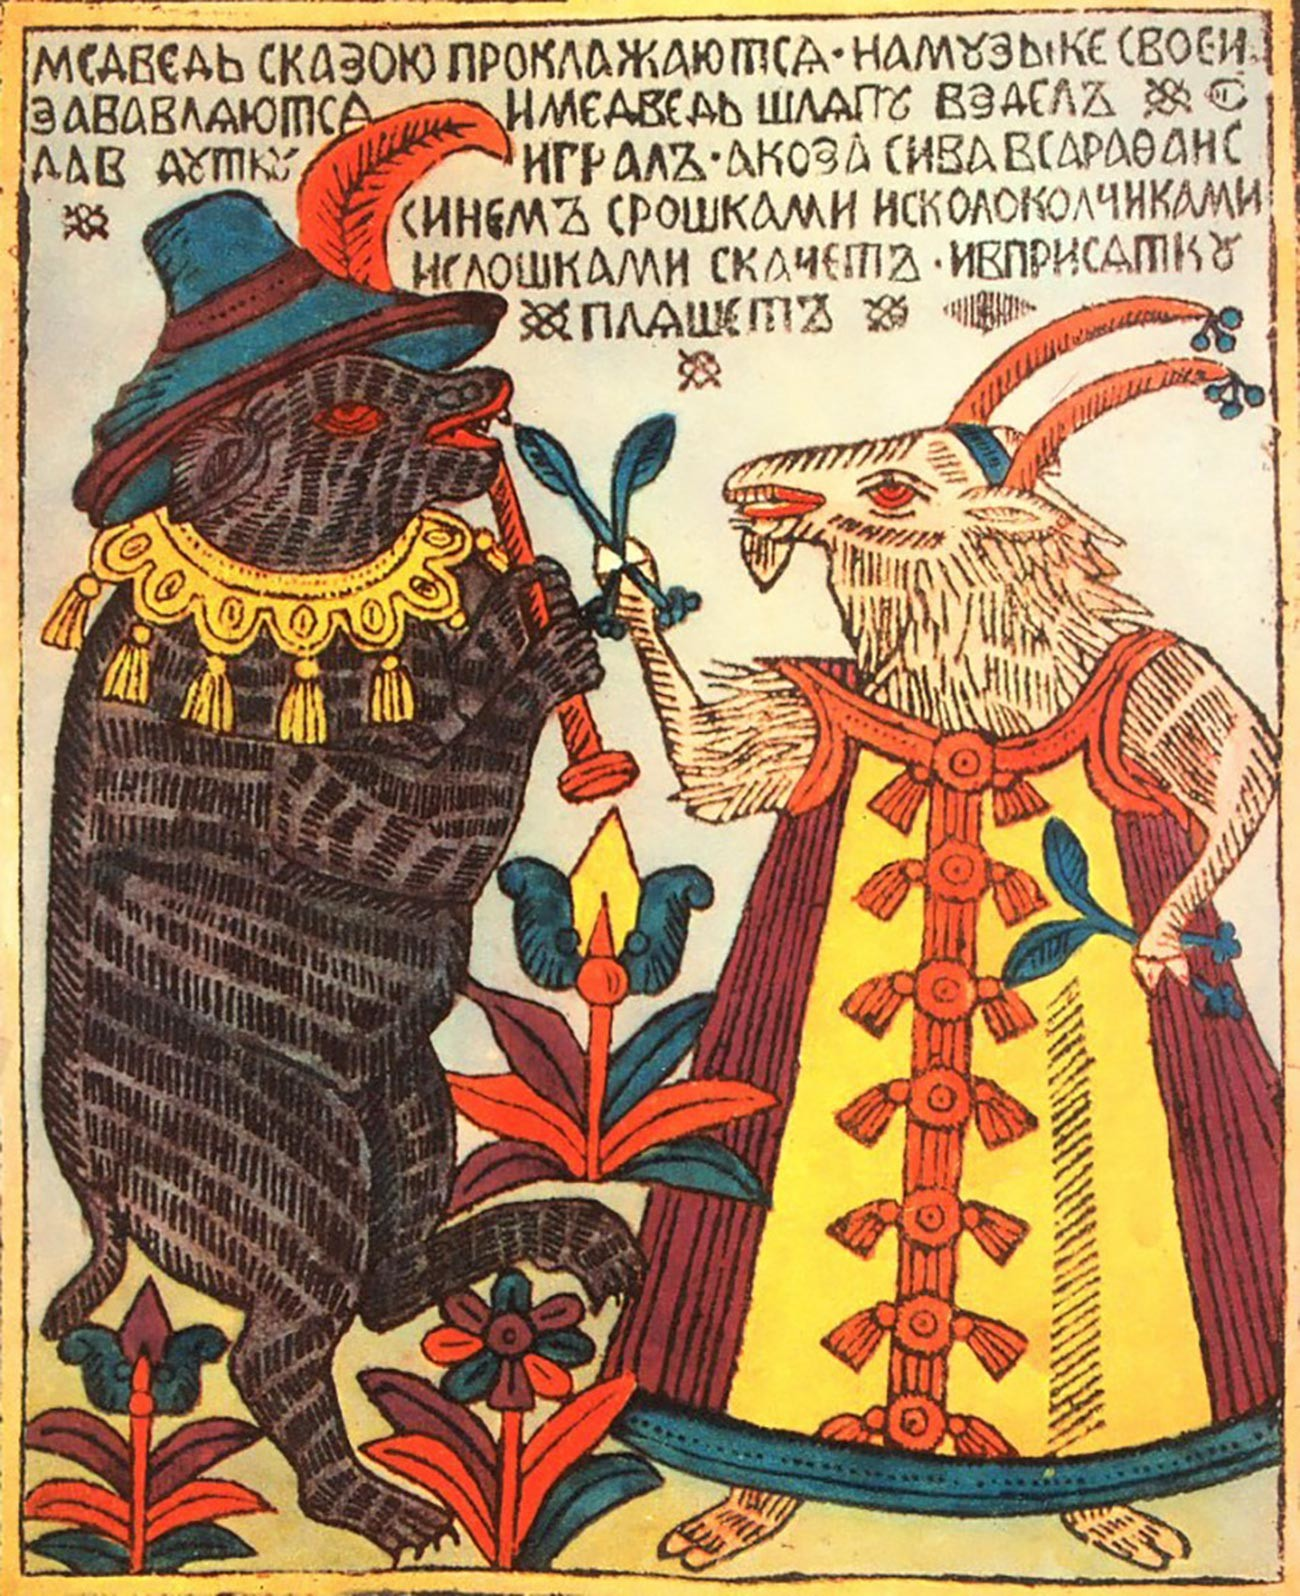 """Lubok, 18th century. The caption reads: """"A bear and a she-goat are idling away the time, having fun playing their music. The bear has put his hat on and is blowing his pipe, while the gray she-goat has put on a blue sarafan and with its trumpets and bells and spoons is jumping and squat dancing."""""""